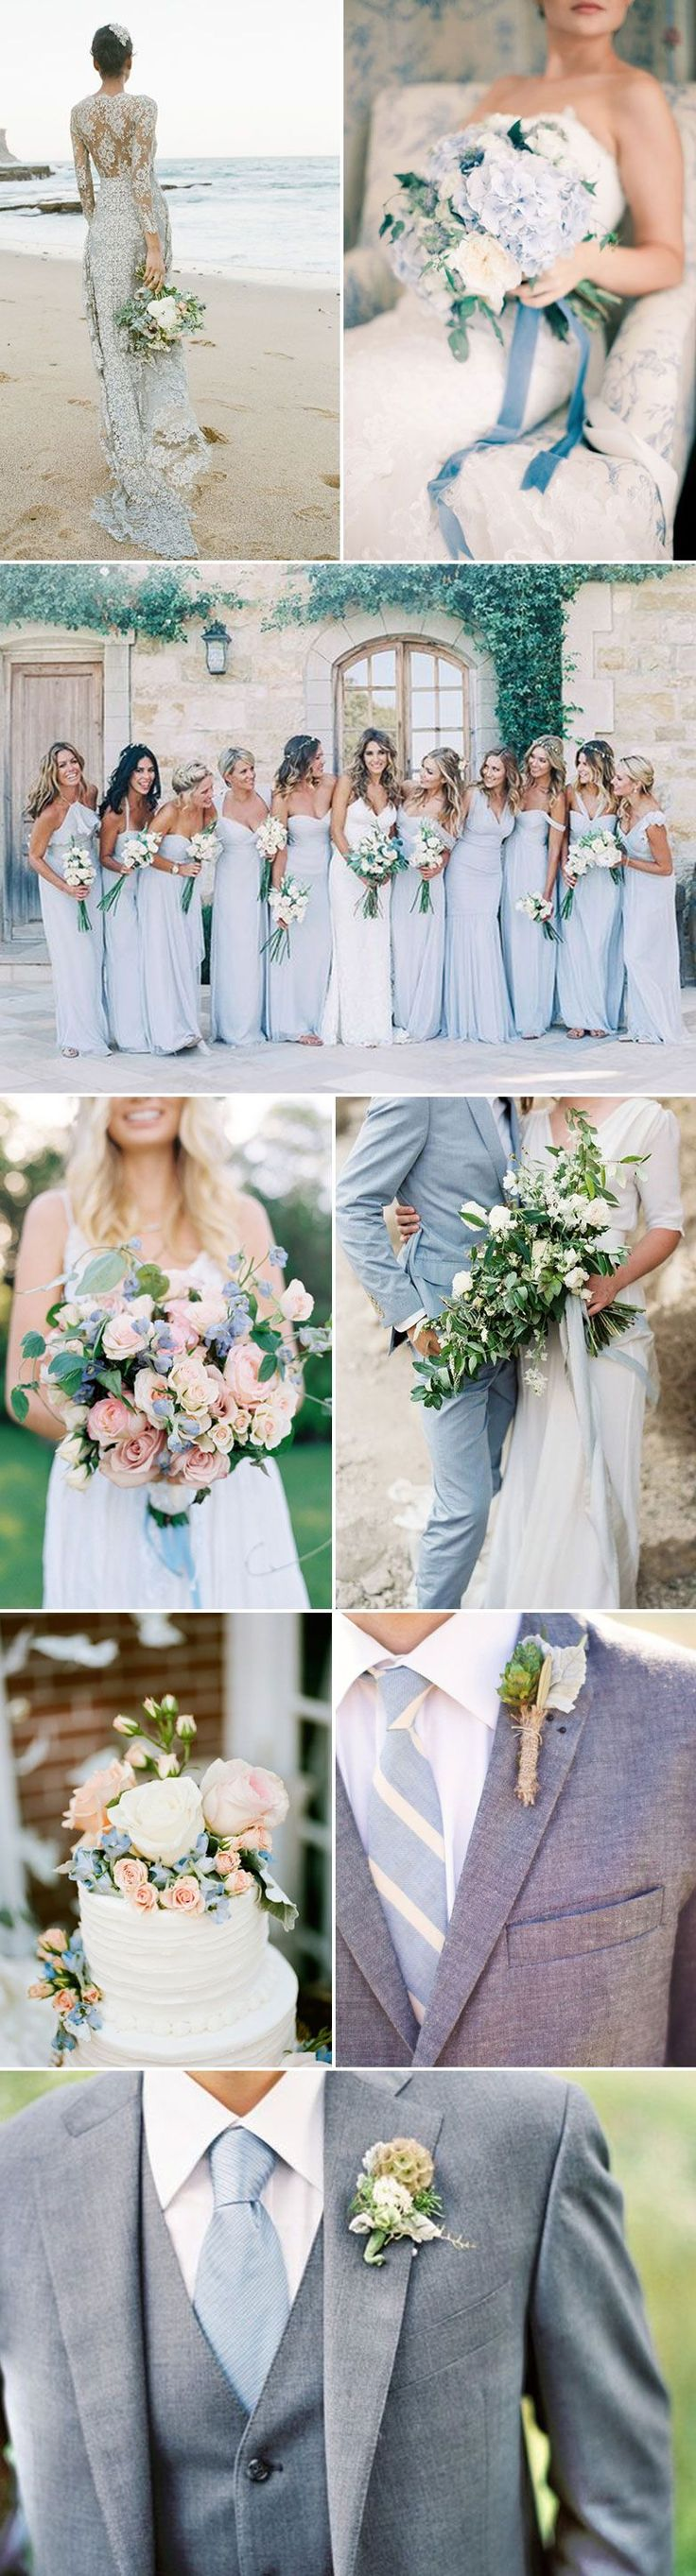 Dial up the charm factor with a wedding in a palette of baby blue and linen whites. The soft shade of baby blue is everyone's favorite hue. It's chic, cool, understated and did we mention - GORGEOUS!